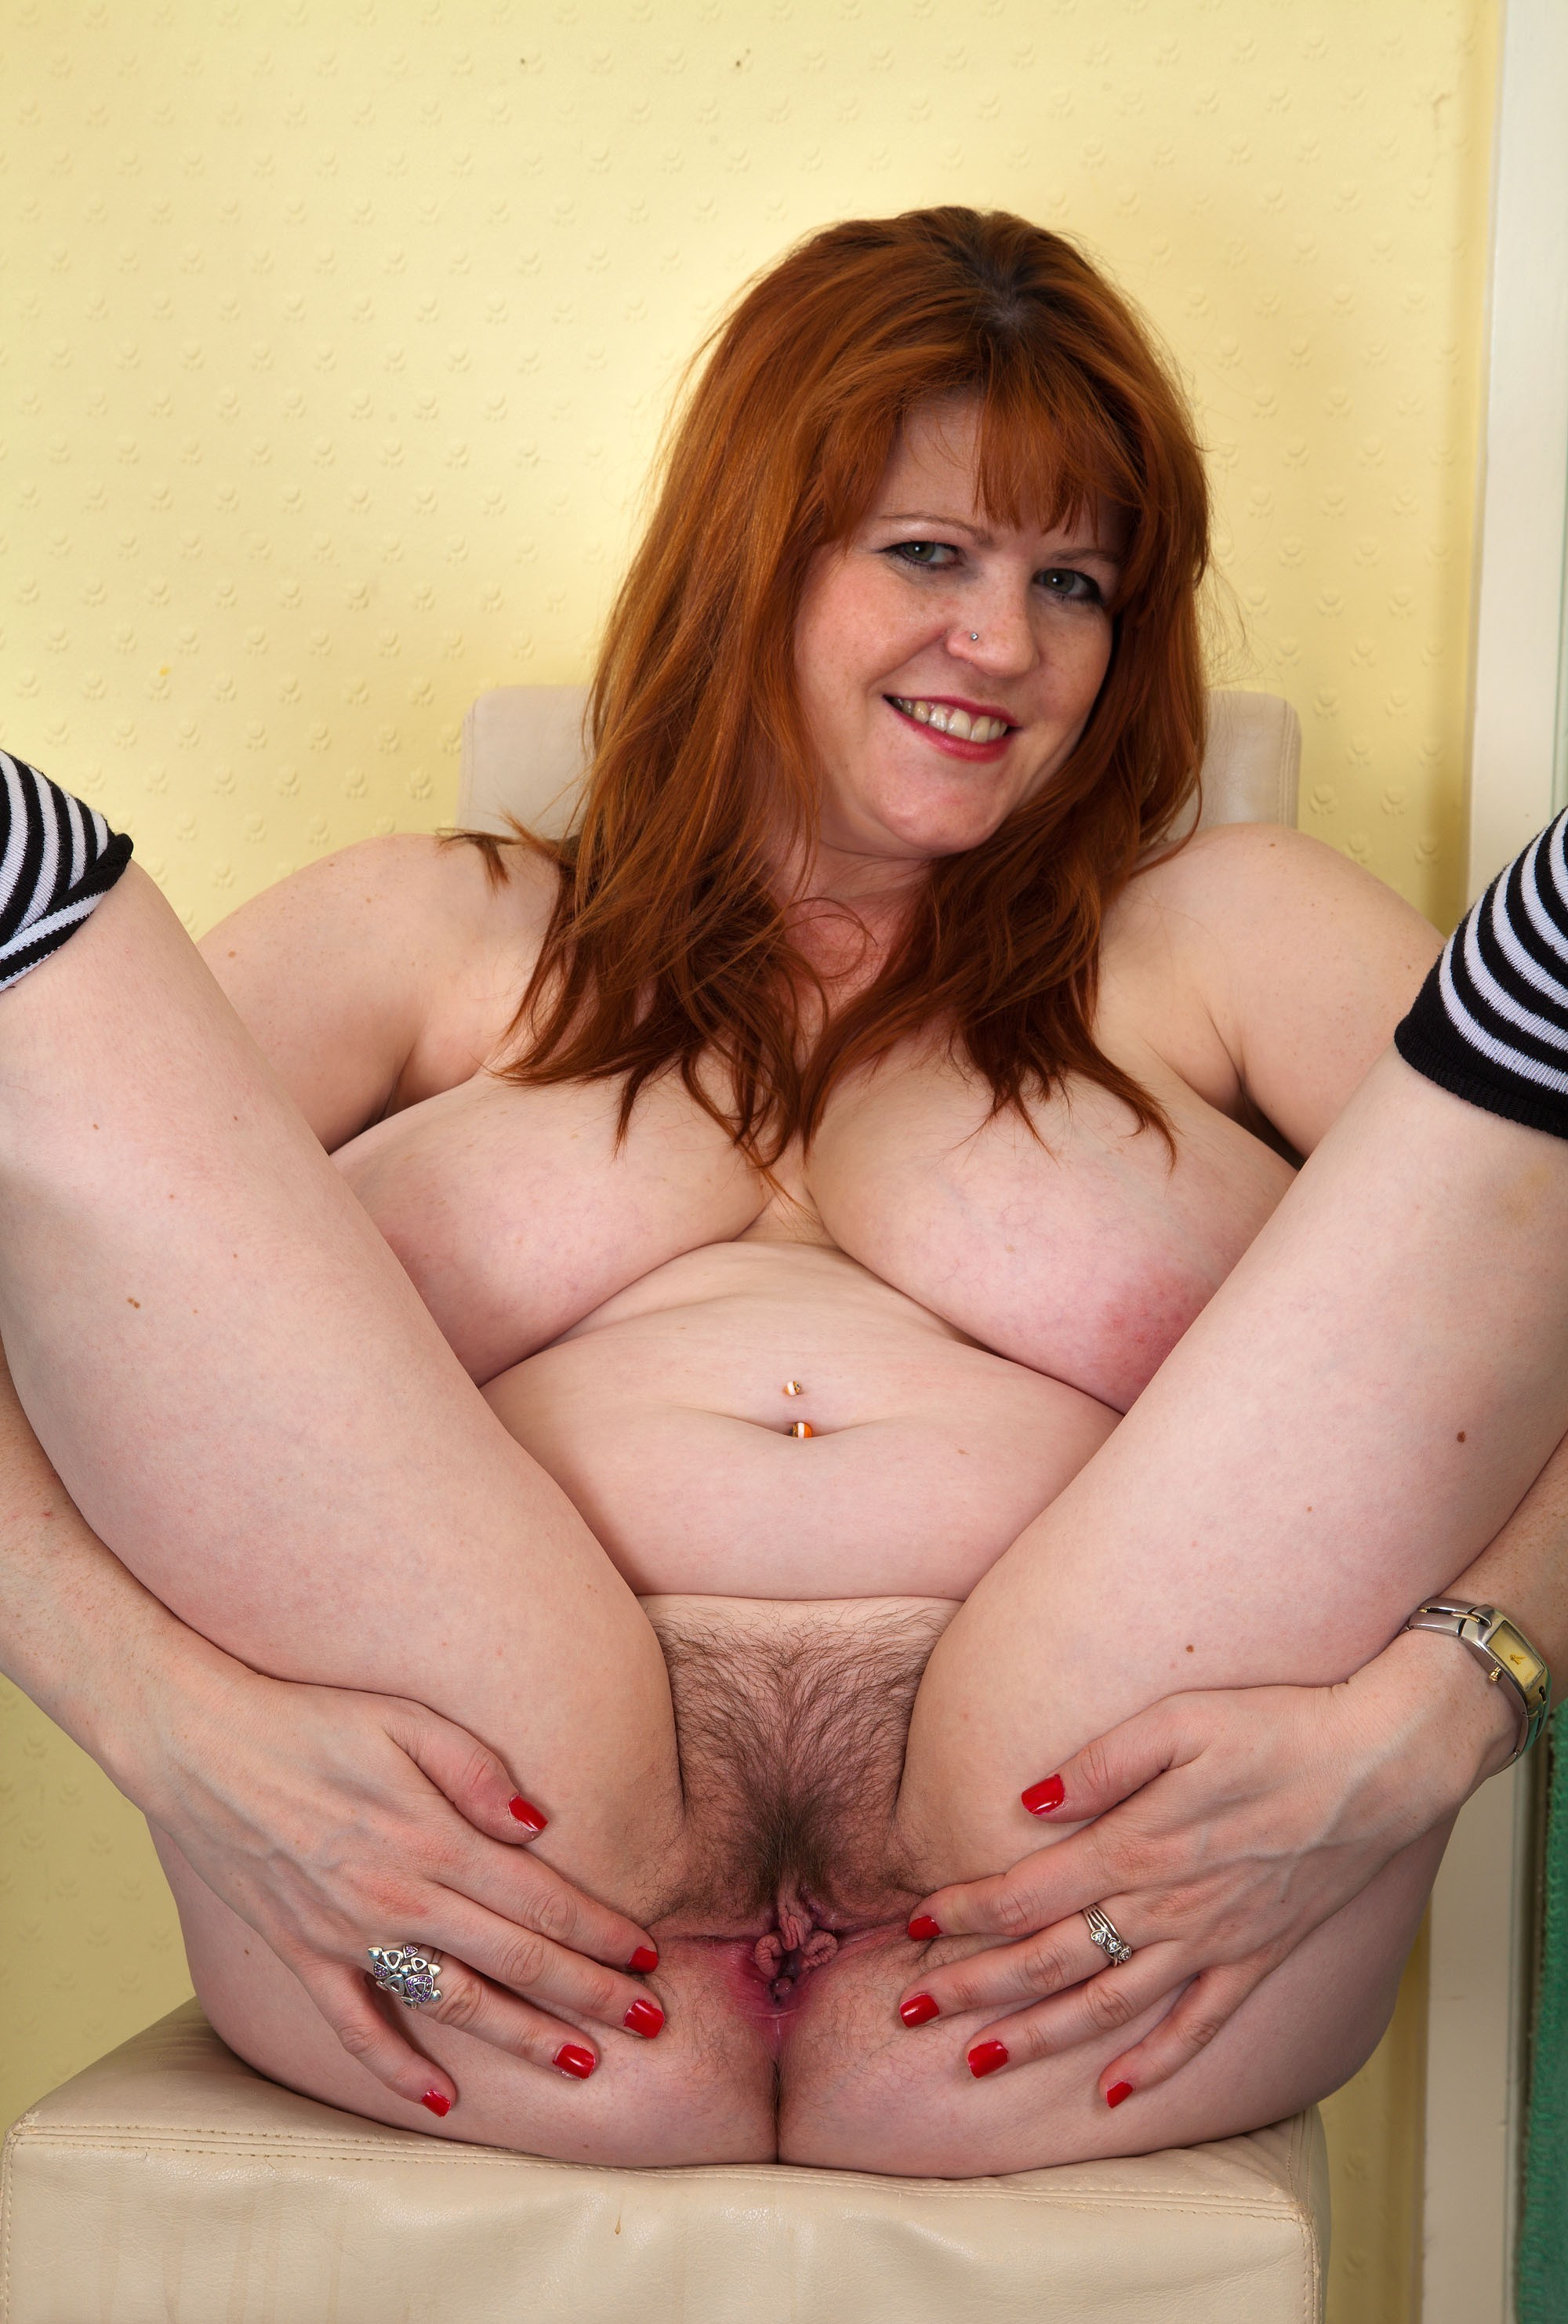 Free Pron Fat Girls Pictures